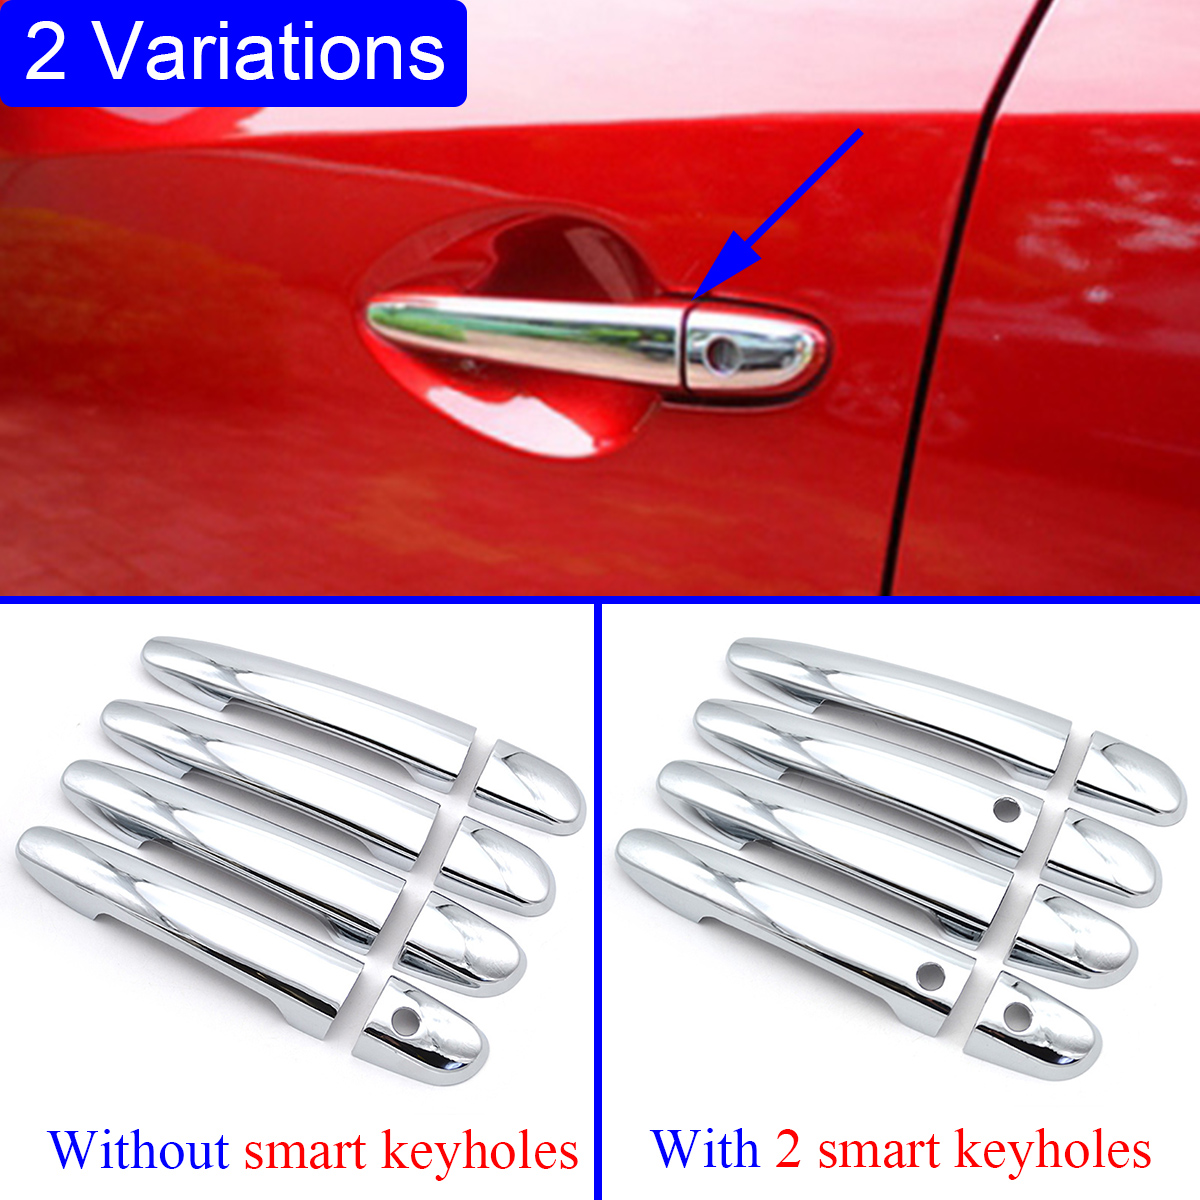 Chrome Door Handle Moulding Protect Cover Trim Fit For <font><b>Mazda</b></font> <font><b>CX5</b></font> CX-5 KF <font><b>Accessories</b></font> 2017 2018 <font><b>2019</b></font> Parts Decoration image